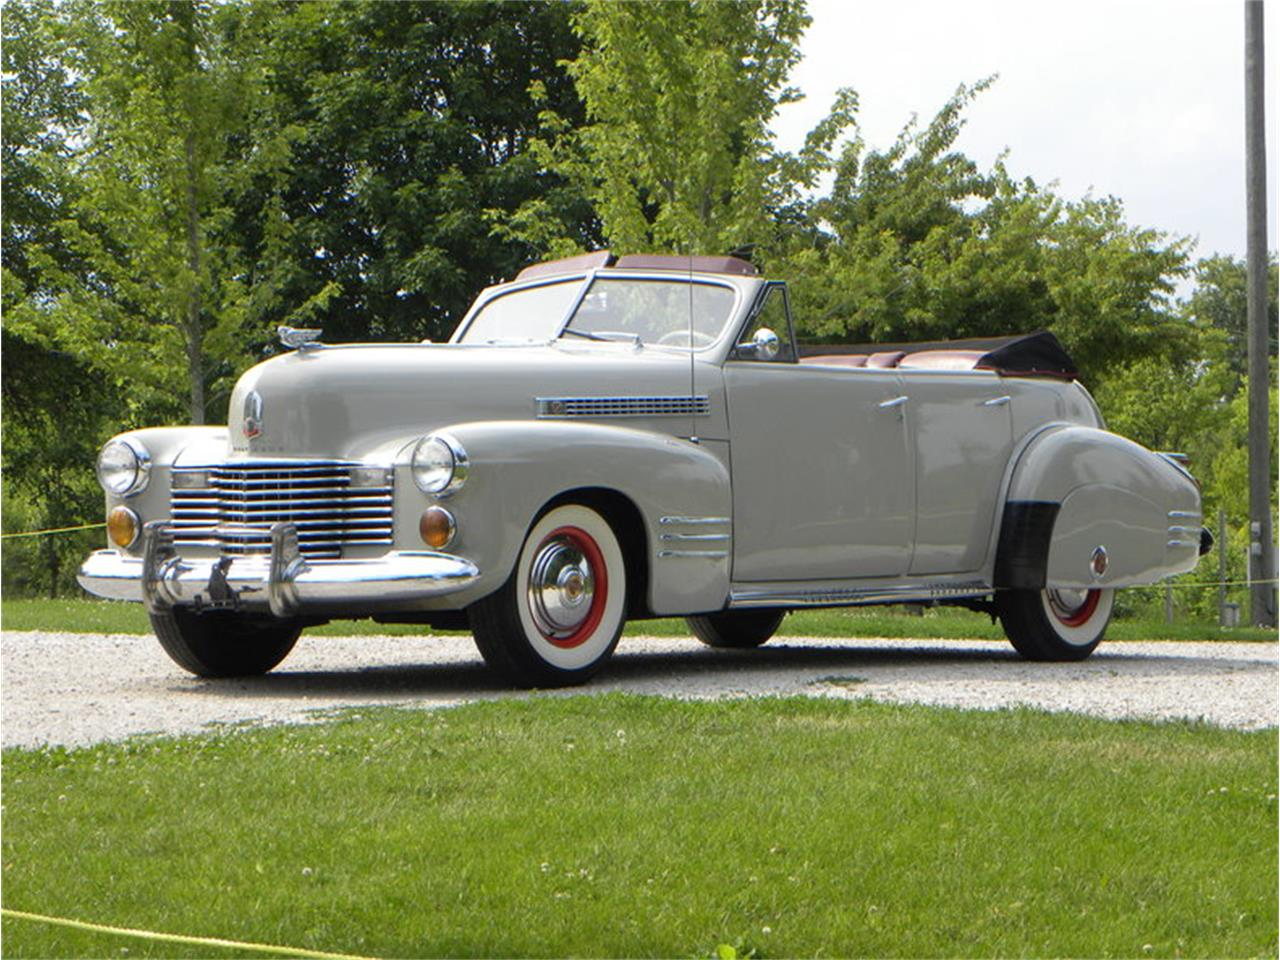 Large Picture of '41 Series 41-62 Convertible Sedan located in Volo Illinois - $42,500.00 - LGAA